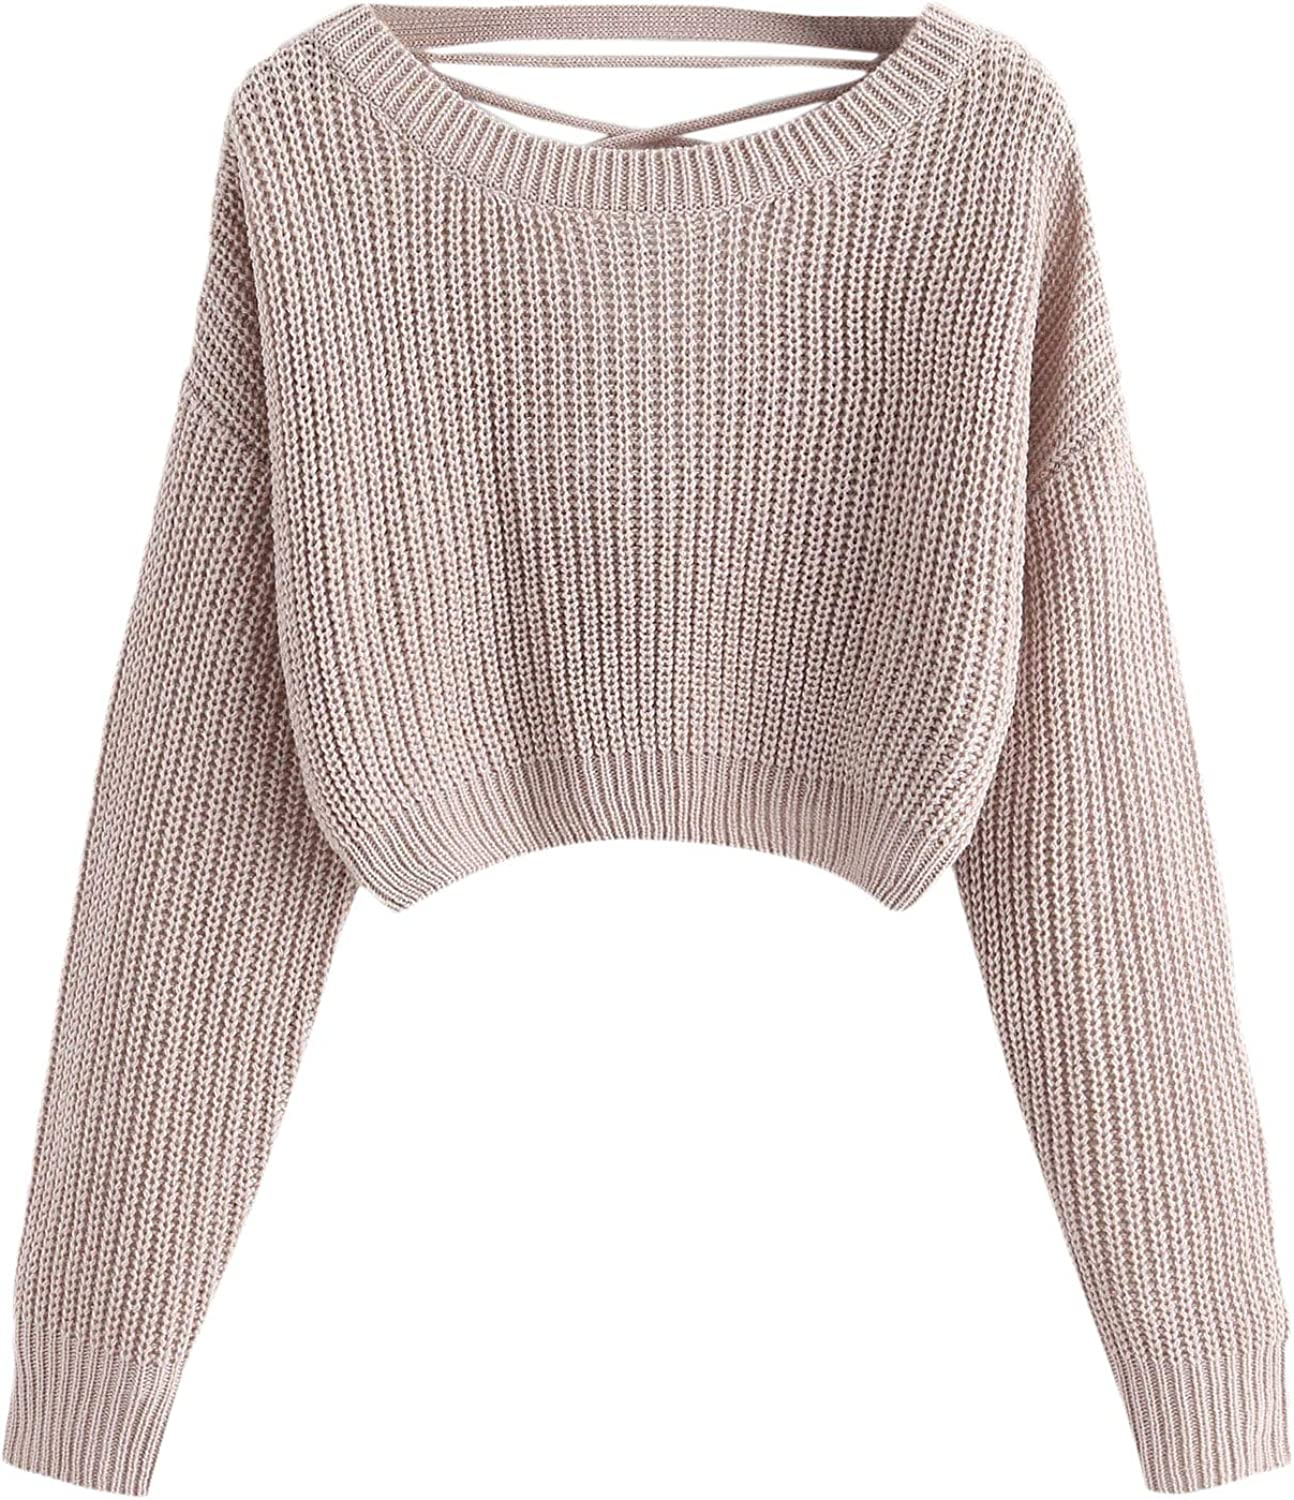 Floerns Women's Lace-Up V Back Long Sleeve Round Neck Crop Pullover Sweater